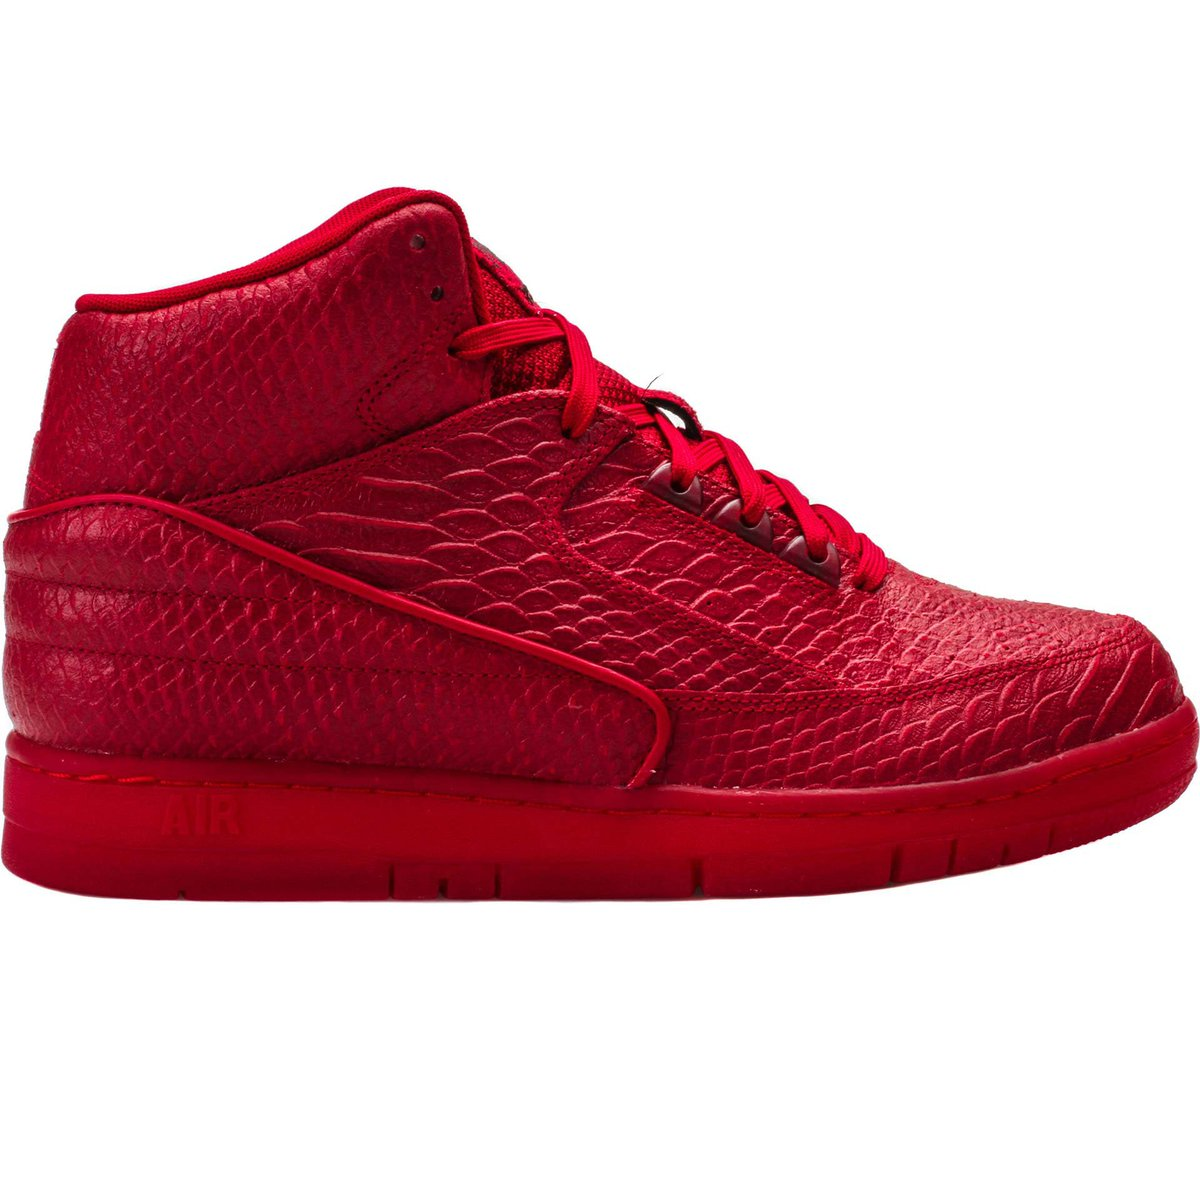 new product a8a89 4806b daily deal 11499 shipped for these nike air python styles